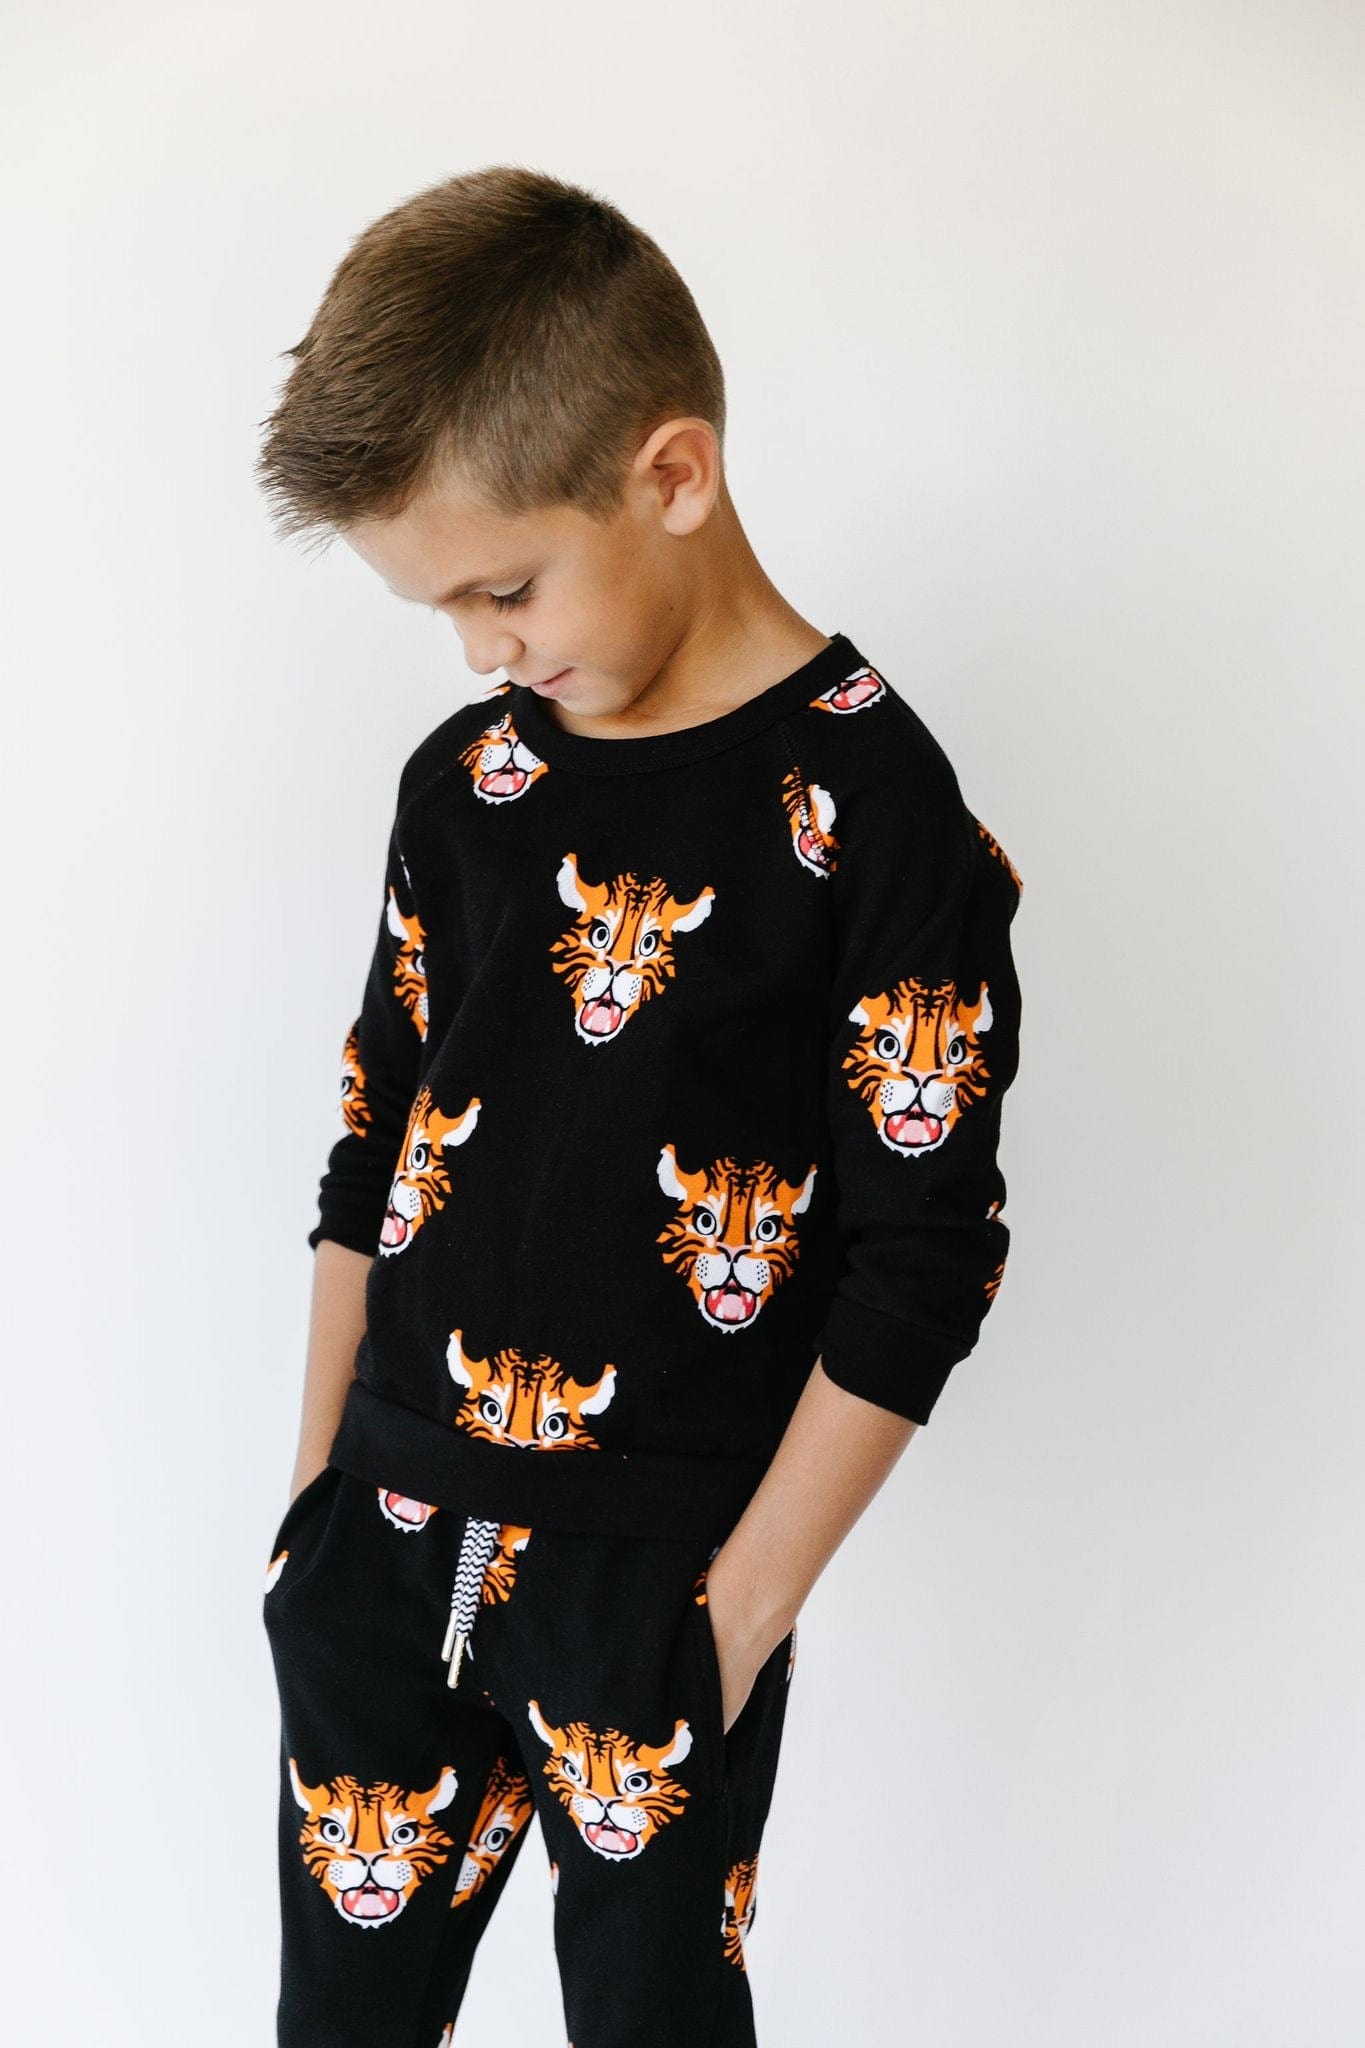 Whistle & Flute All Over Print Sweatshirt - Kawaii Tiger